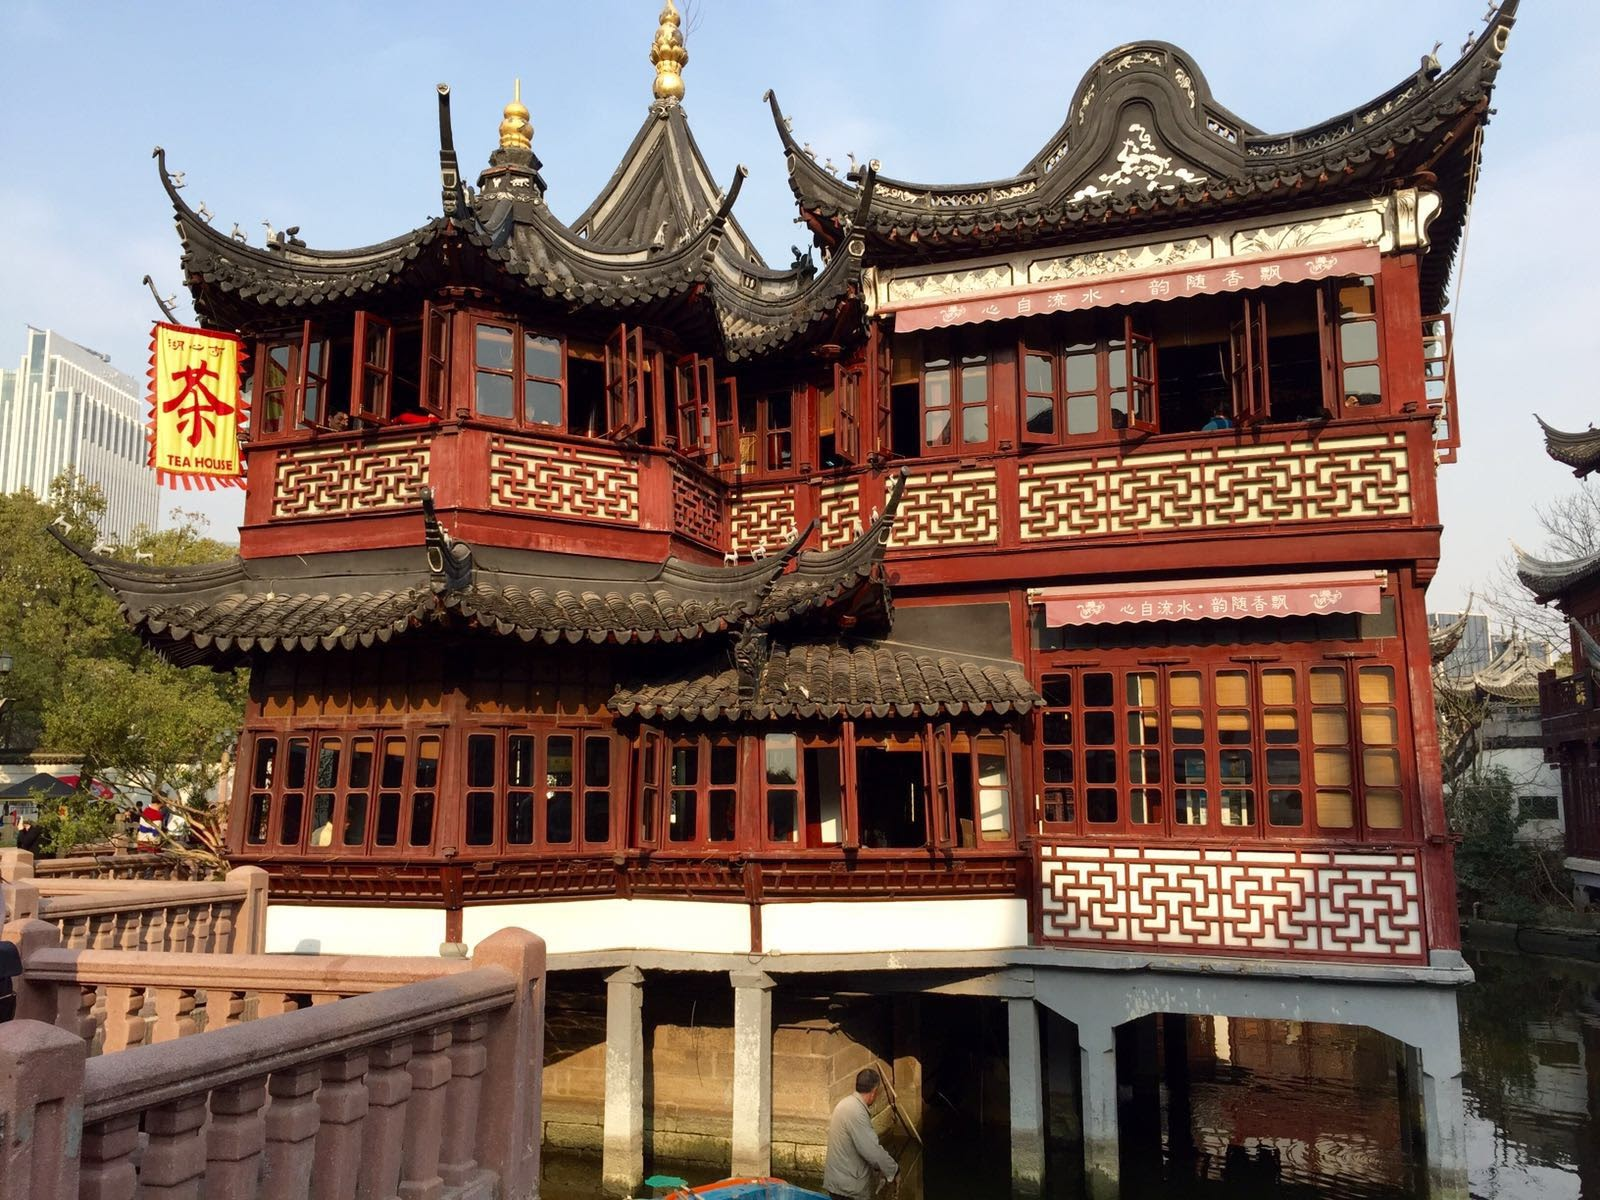 my trip to china Best china tour packages for american travelers who want to get china tours at best price chinatourcom international, inc which is the best china travel agency helps americans fulfill their holiday dreams with affordable tour packages.